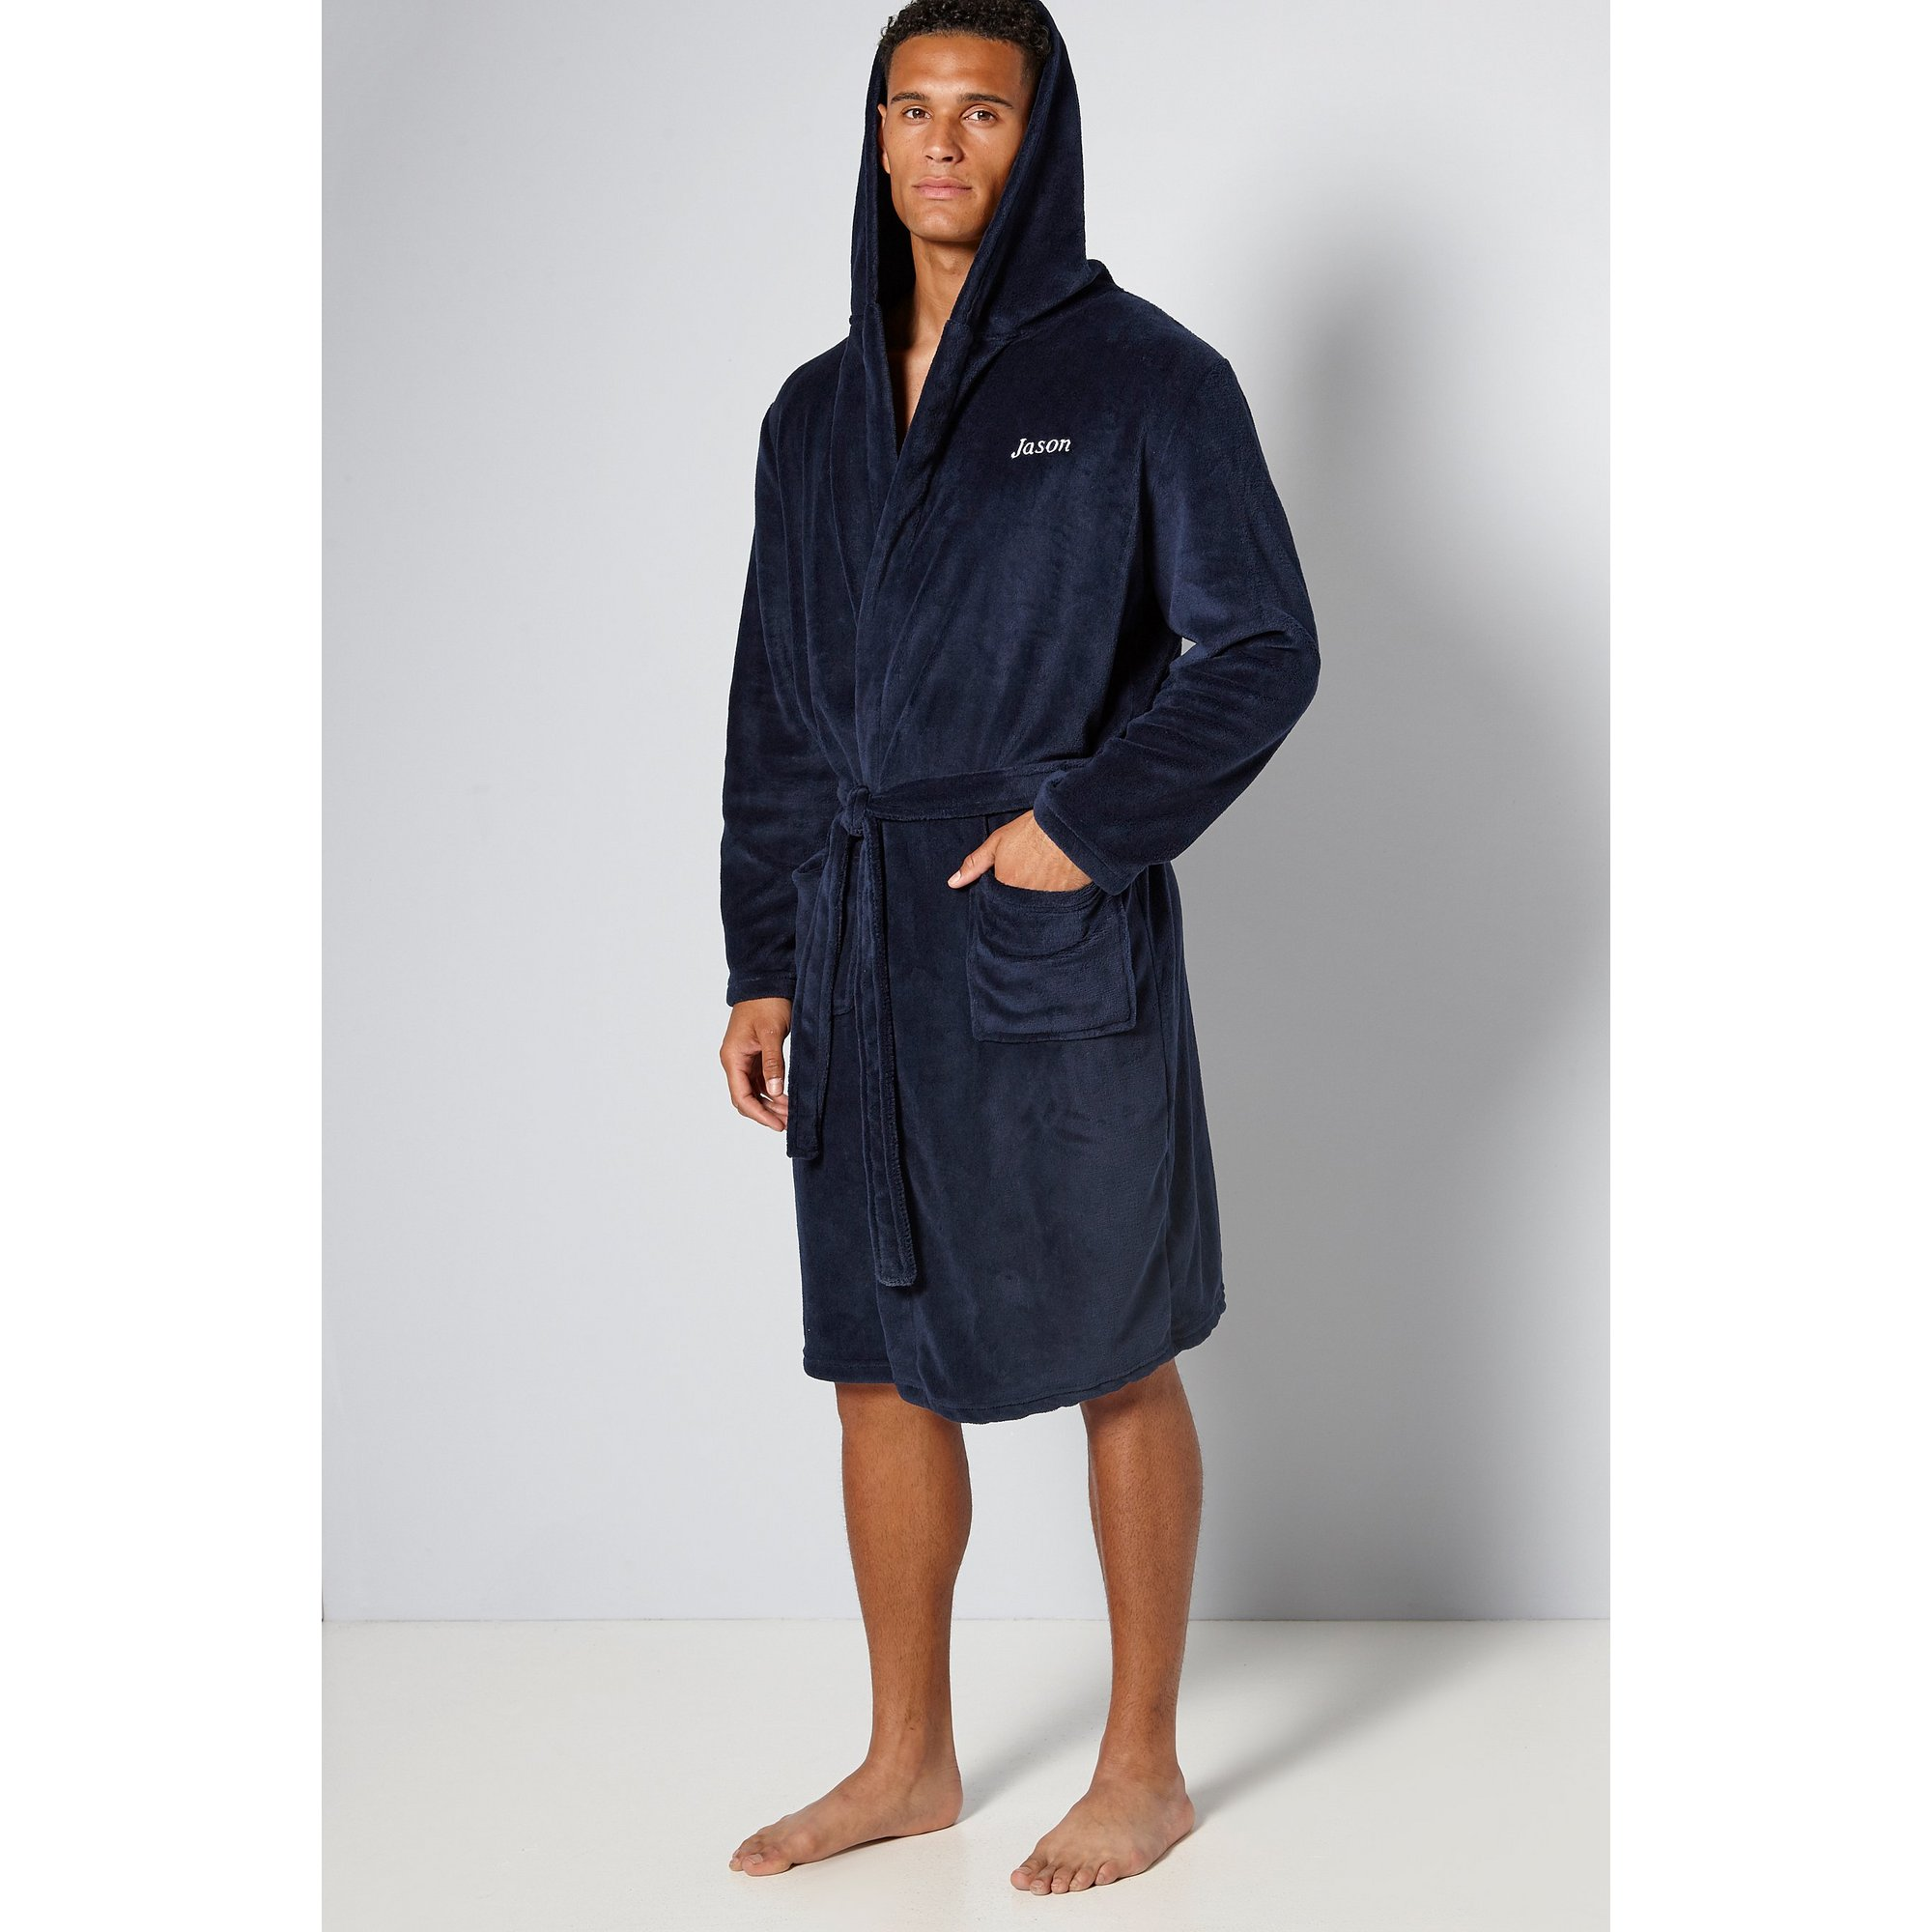 Image of Embroidered Personalised Hooded Dressing Gown